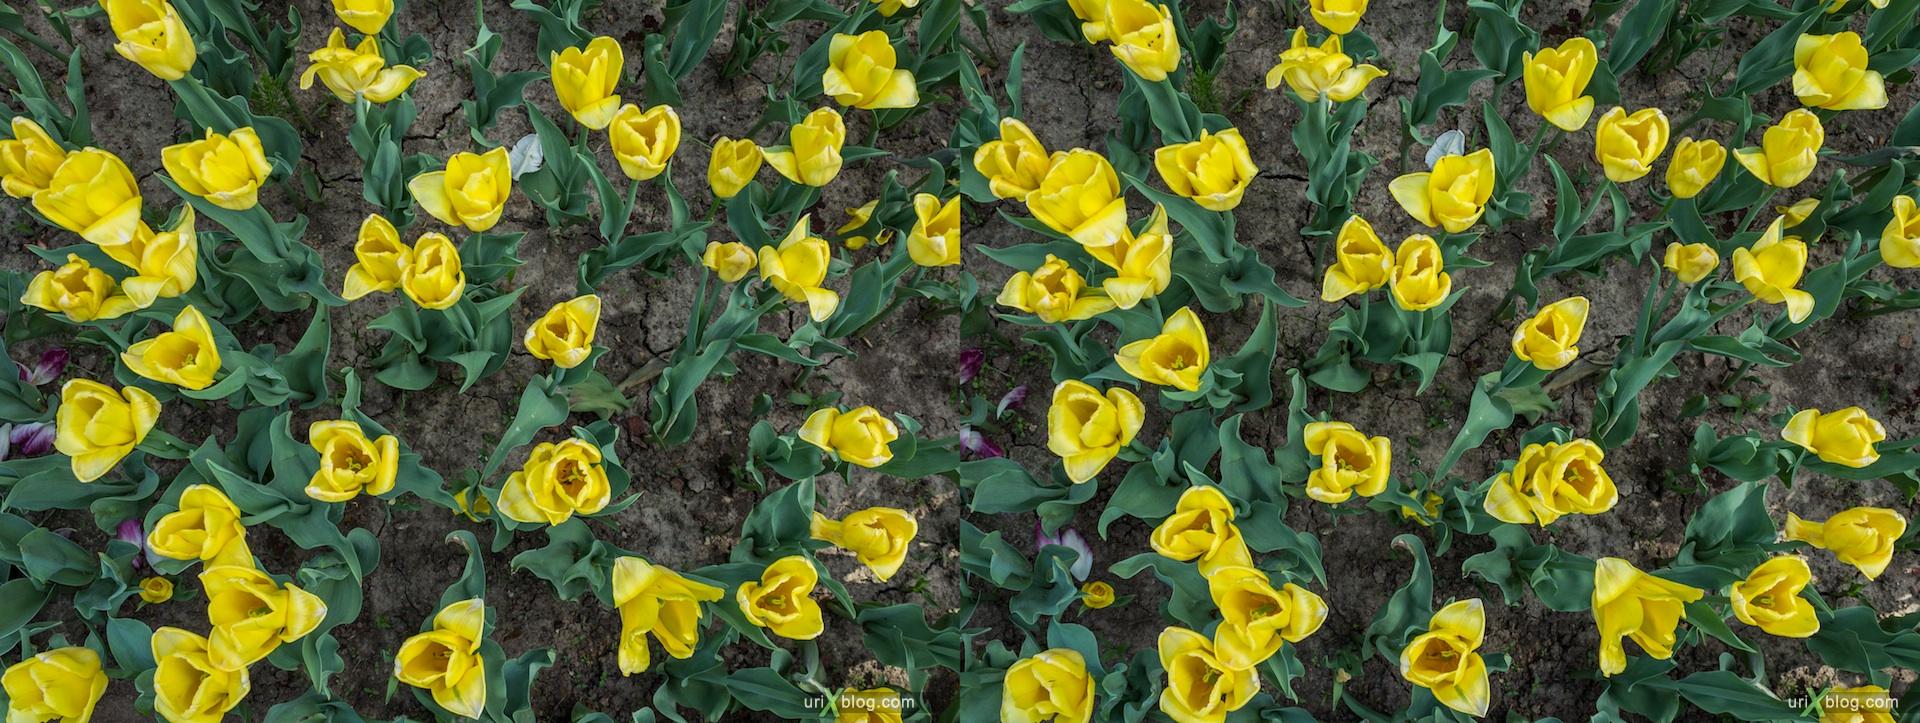 2013, yellow, red, Tulips, field, flower, grass, park, field, Moscow, Russia, spring, 3D, stereo pair, cross-eyed, crossview, cross view stereo pair, stereoscopic